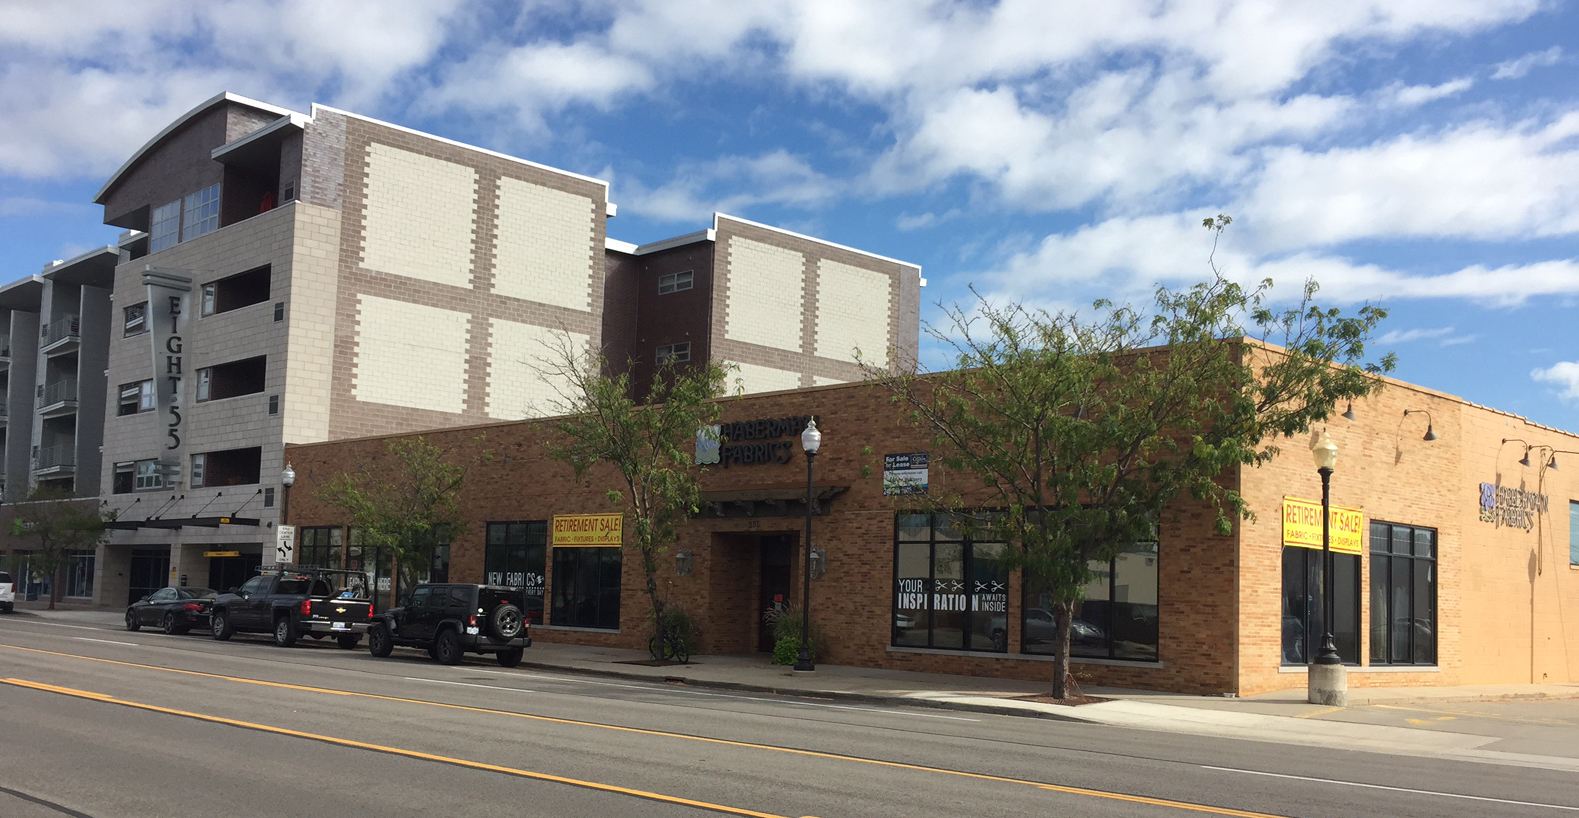 Exceptionnel Bright Ideas Furniture To Buy Former Haberman Fabrics Building In Royal Oak